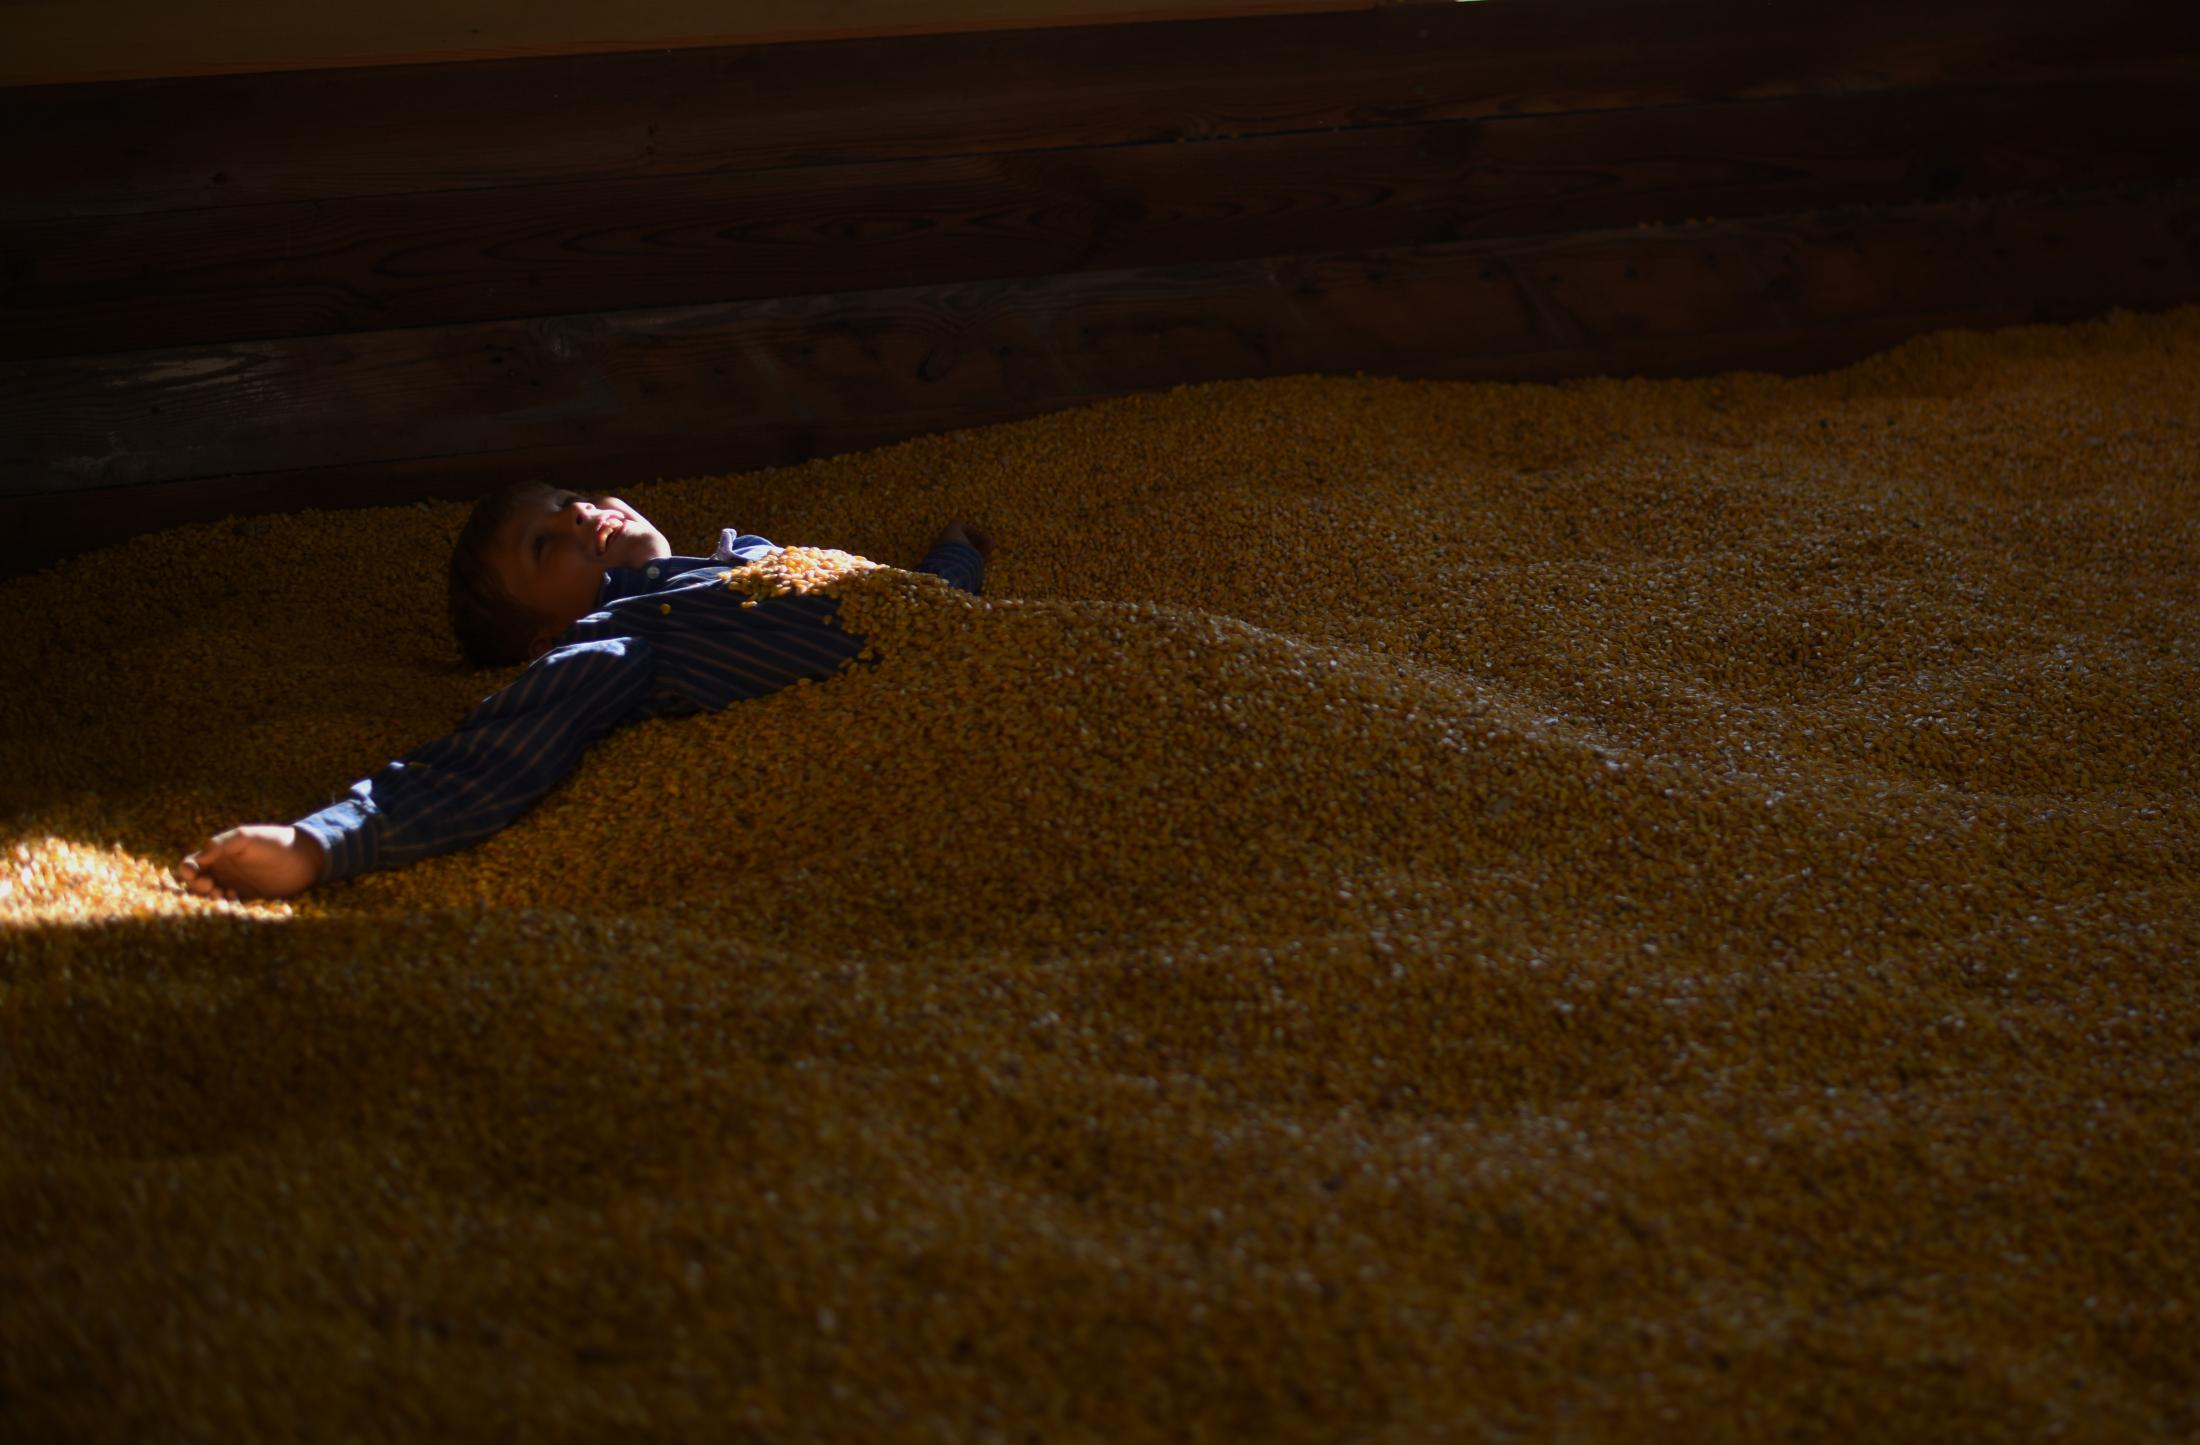 Zeke Lyons, 9, lies in a pit of corn at Shryocks corn maze Oct. 13, 2019 outside Columbia, Missouri. He and his family visited Shryocks in 2018 and decided to return for another year.